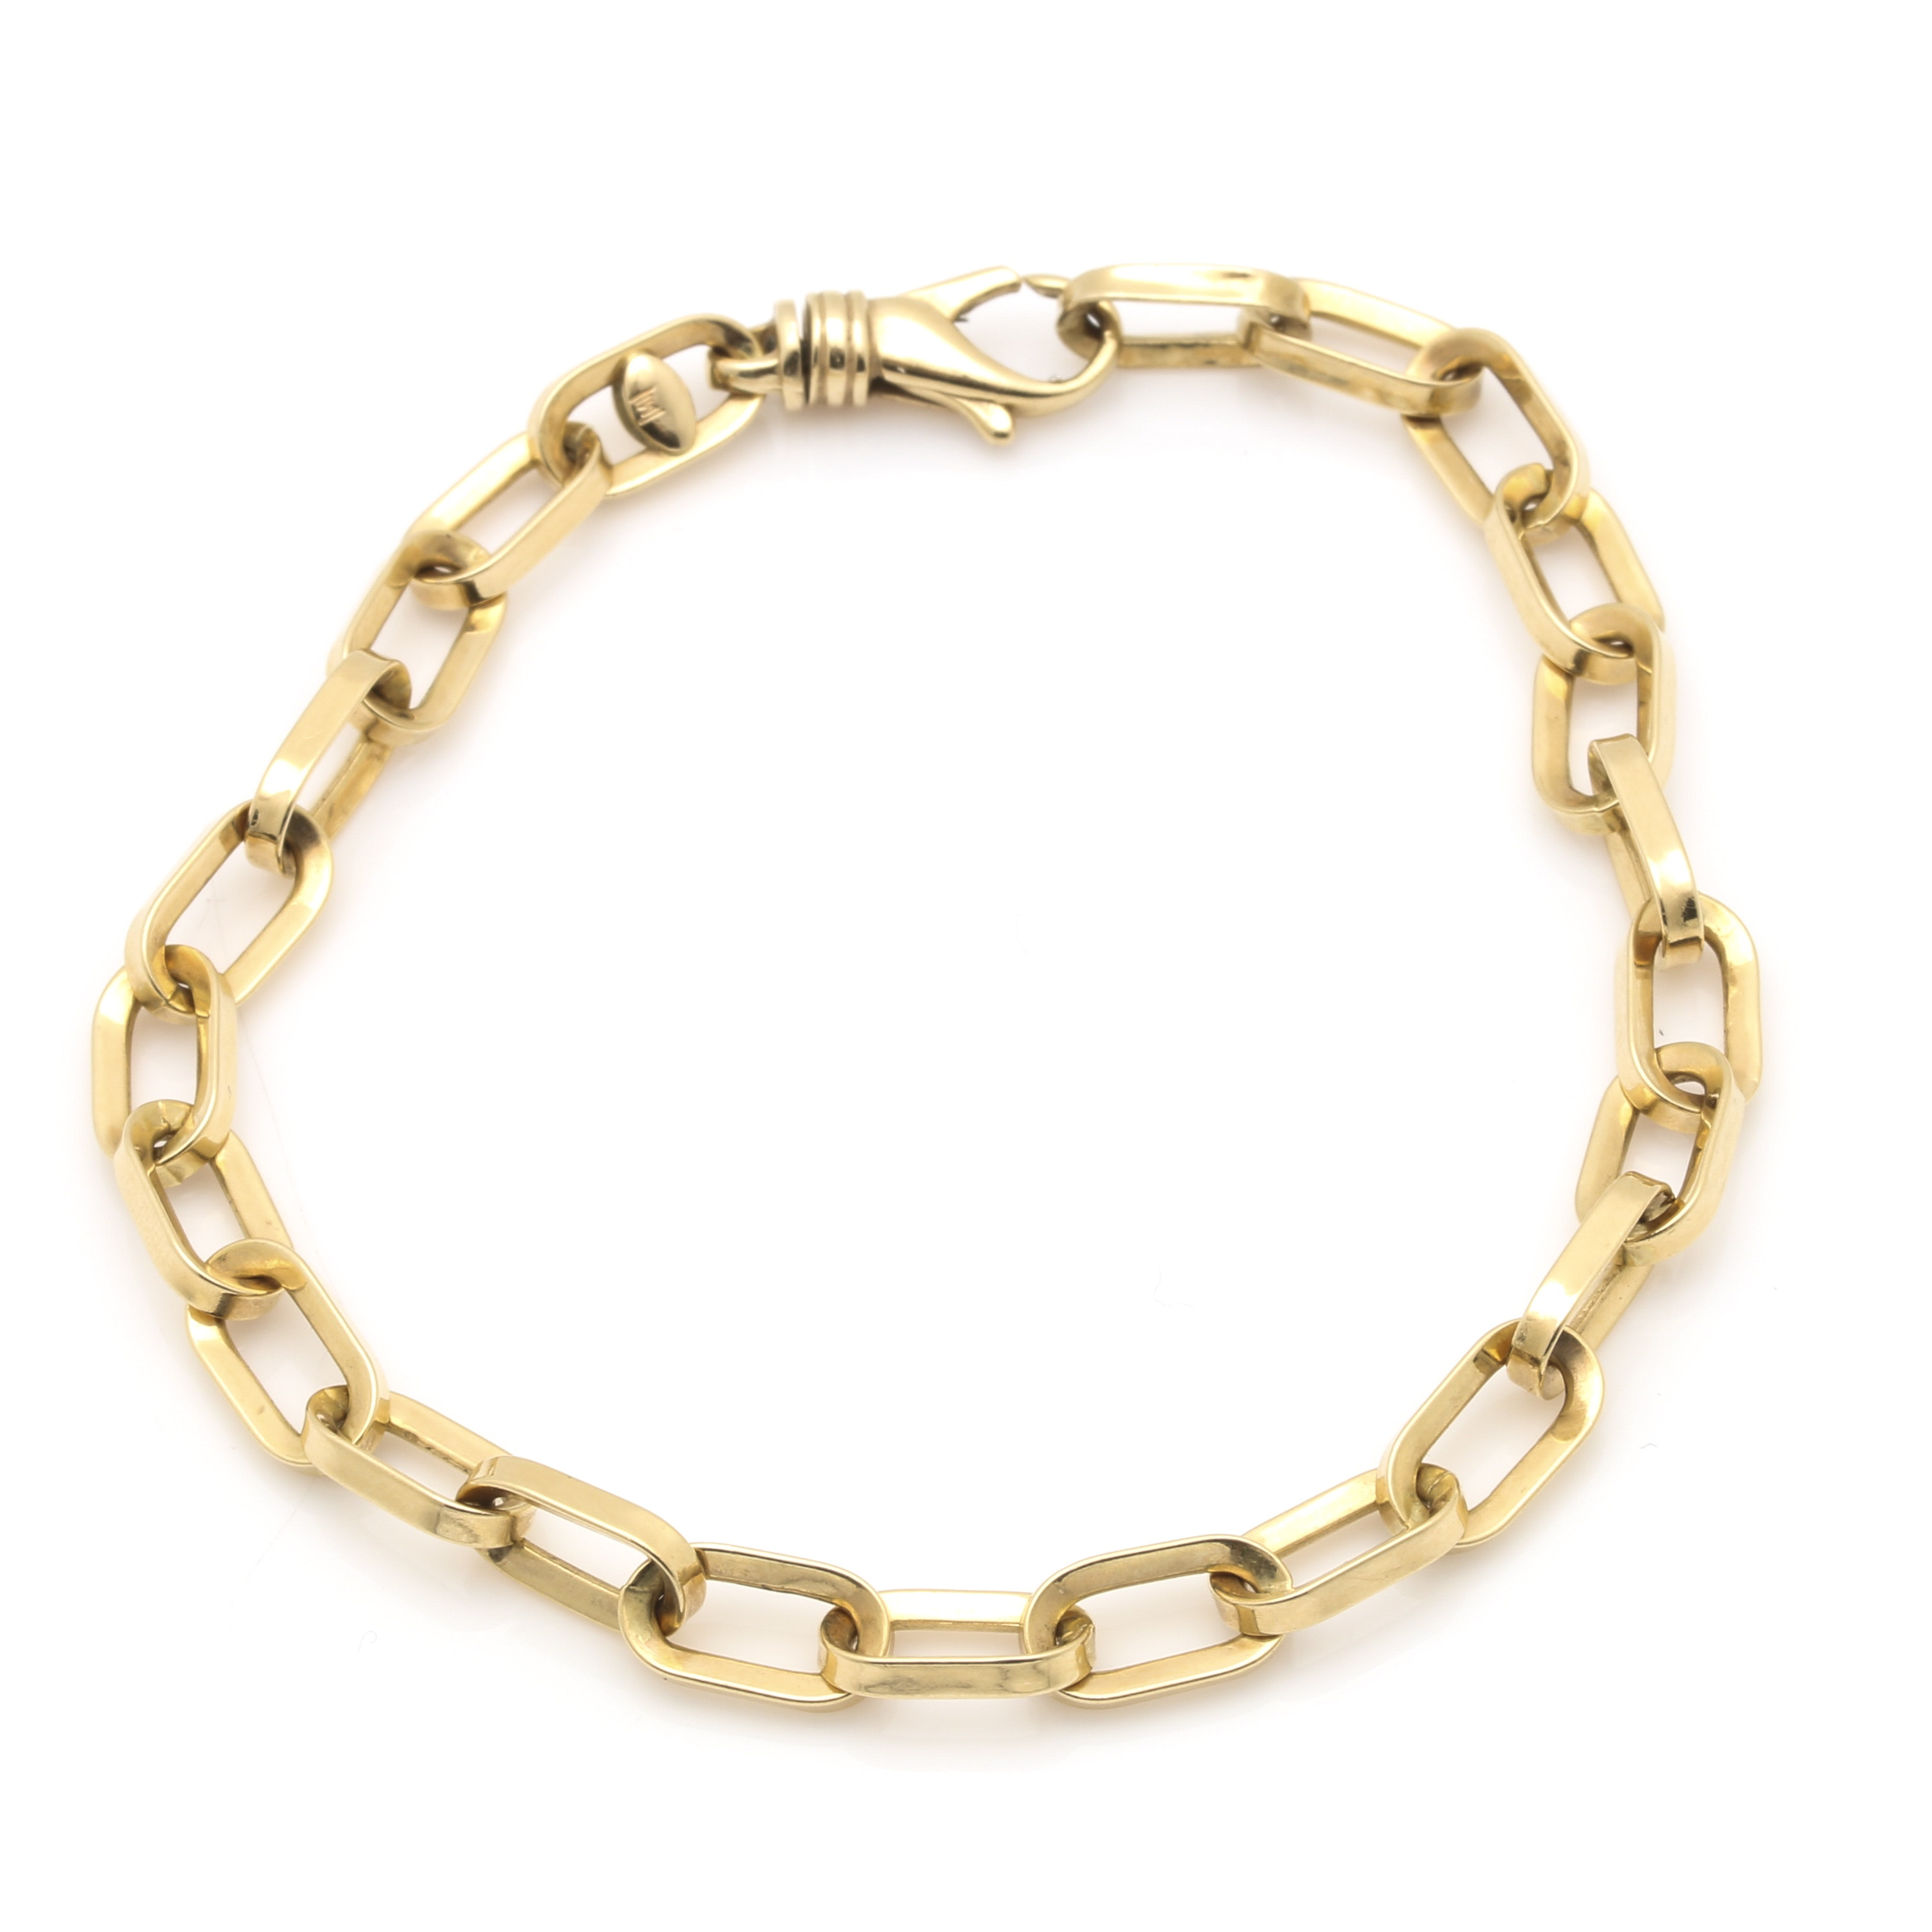 14K Yellow Gold Elongated Cable Link Chain Bracelet